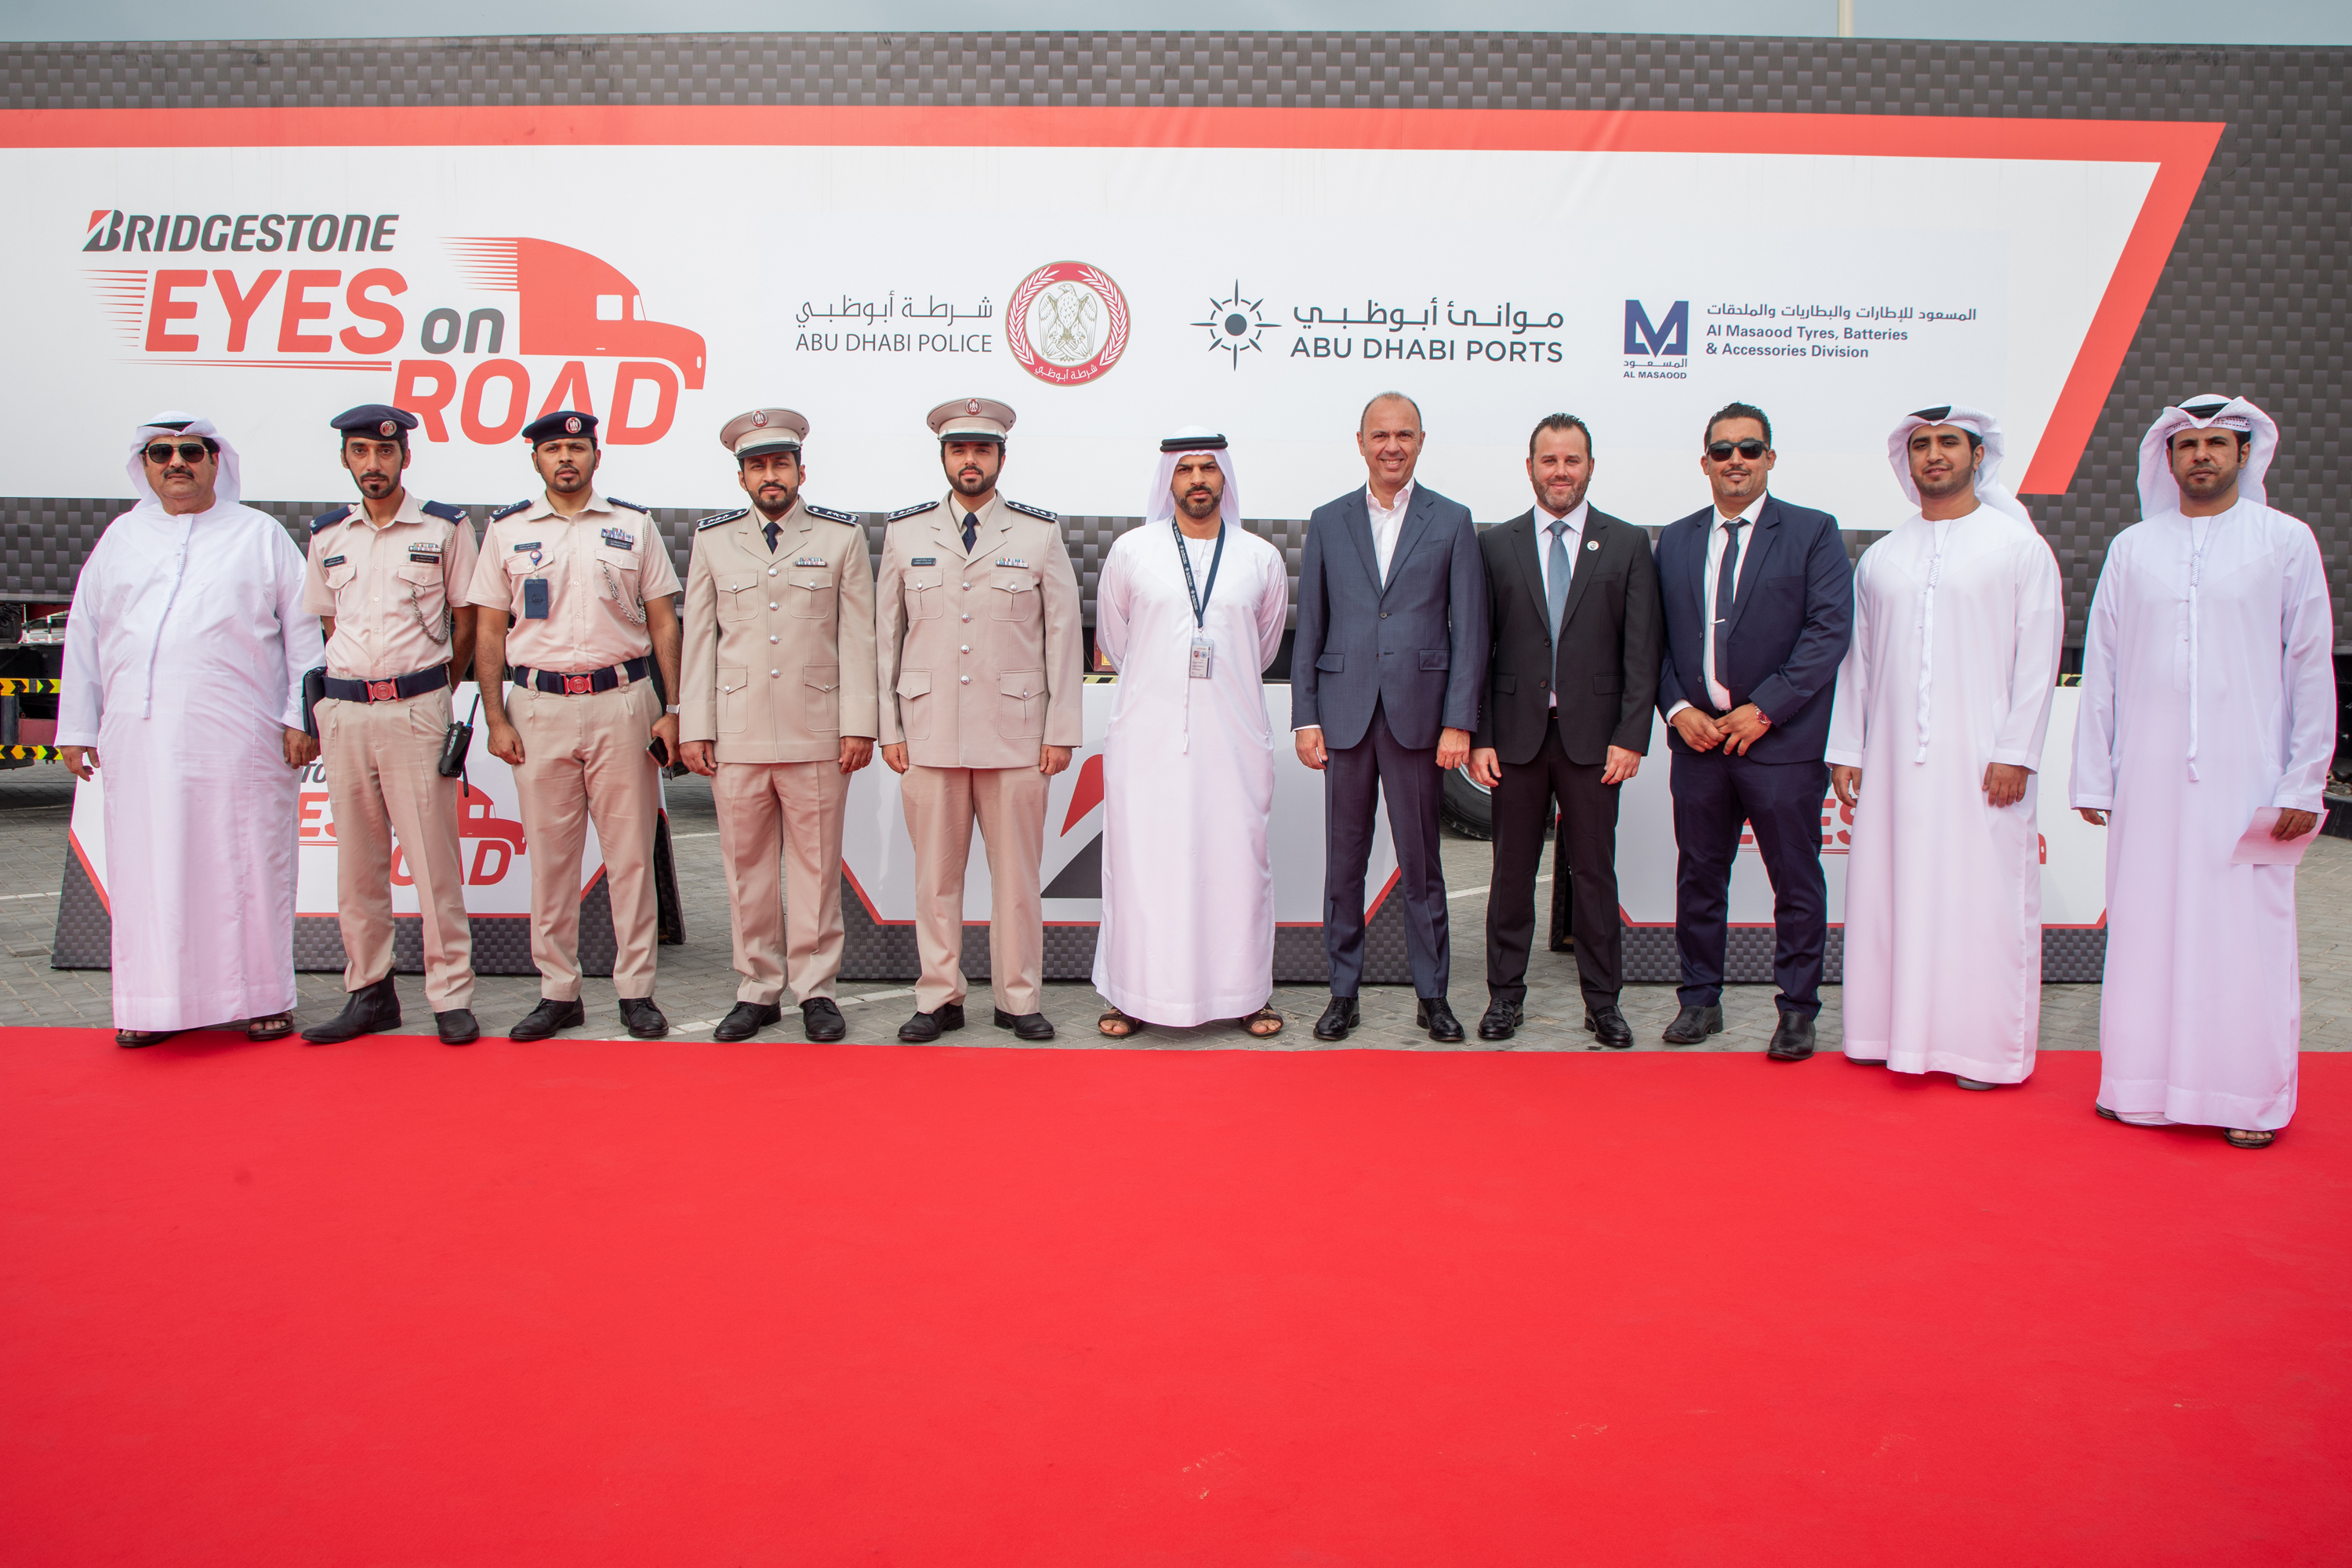 Al Masaood Collaborates with Bridgestone to promote health & safety for UAE truck drivers in partnership with several government entities